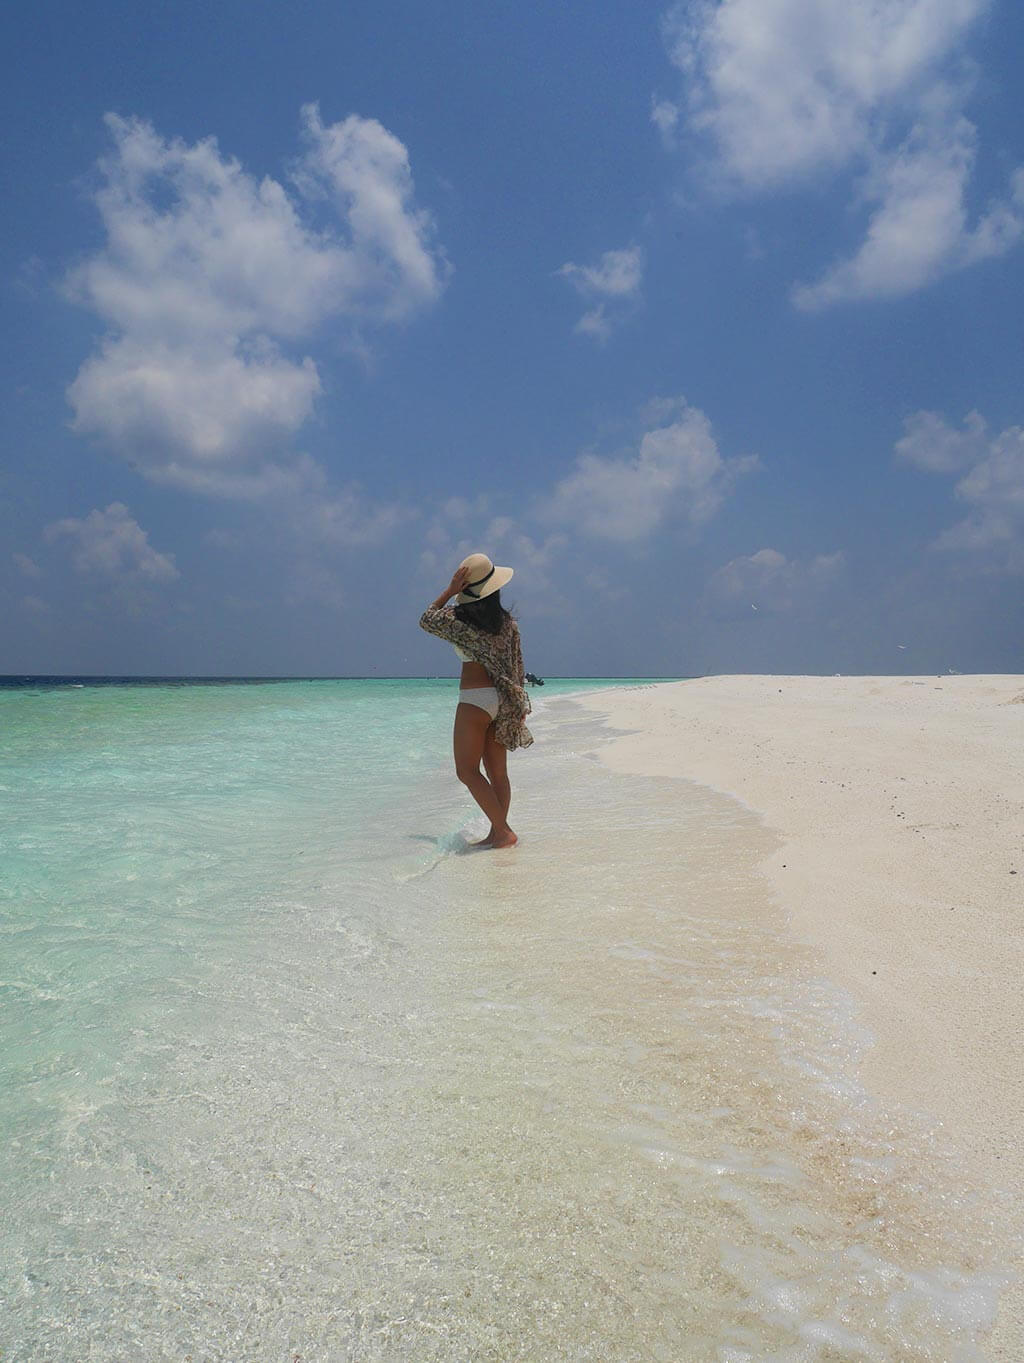 Sandbank near Gaafaru, Maldives | Laugh Travel Eat